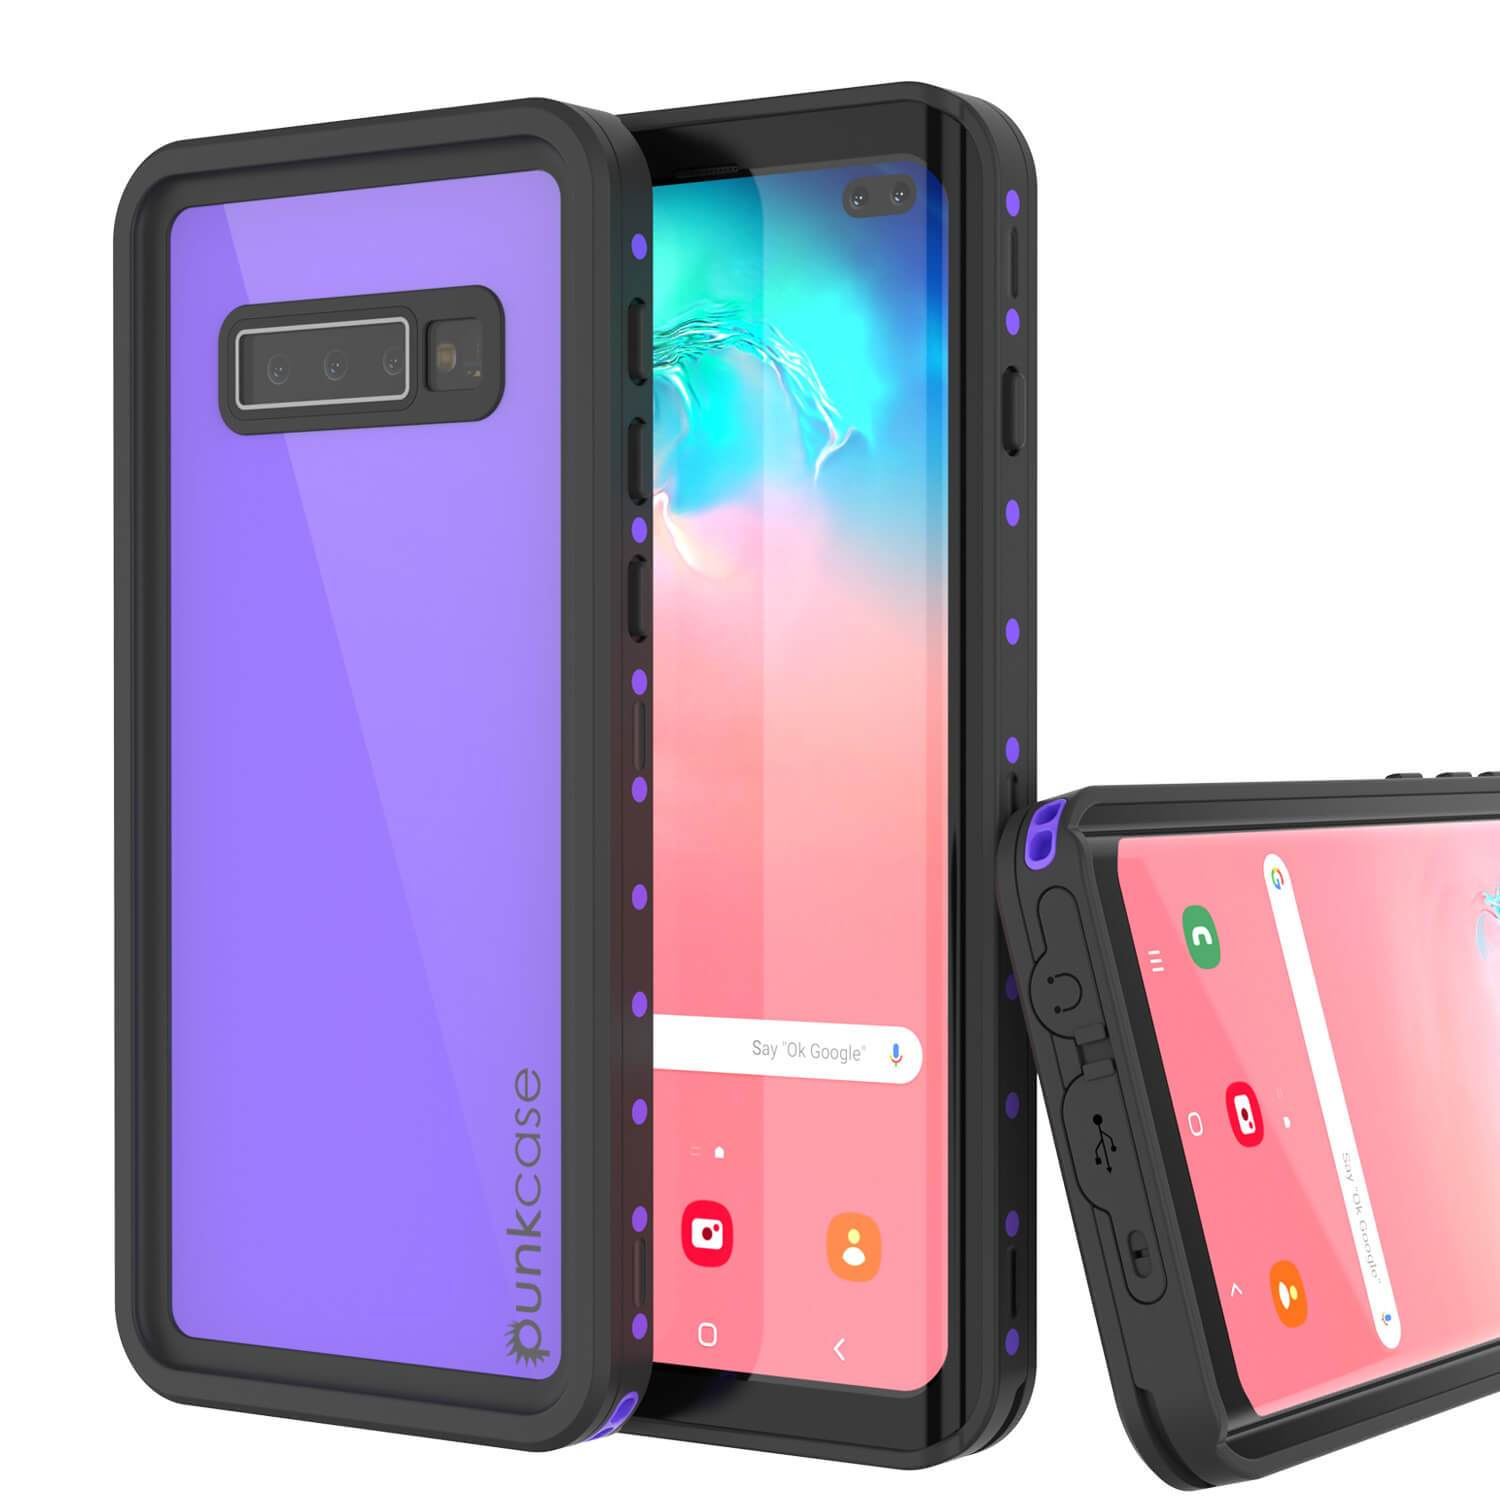 Galaxy S10+ Plus Waterproof Case PunkCase StudStar Purple Thin 6.6ft Underwater IP68 Shock/Snow Proof